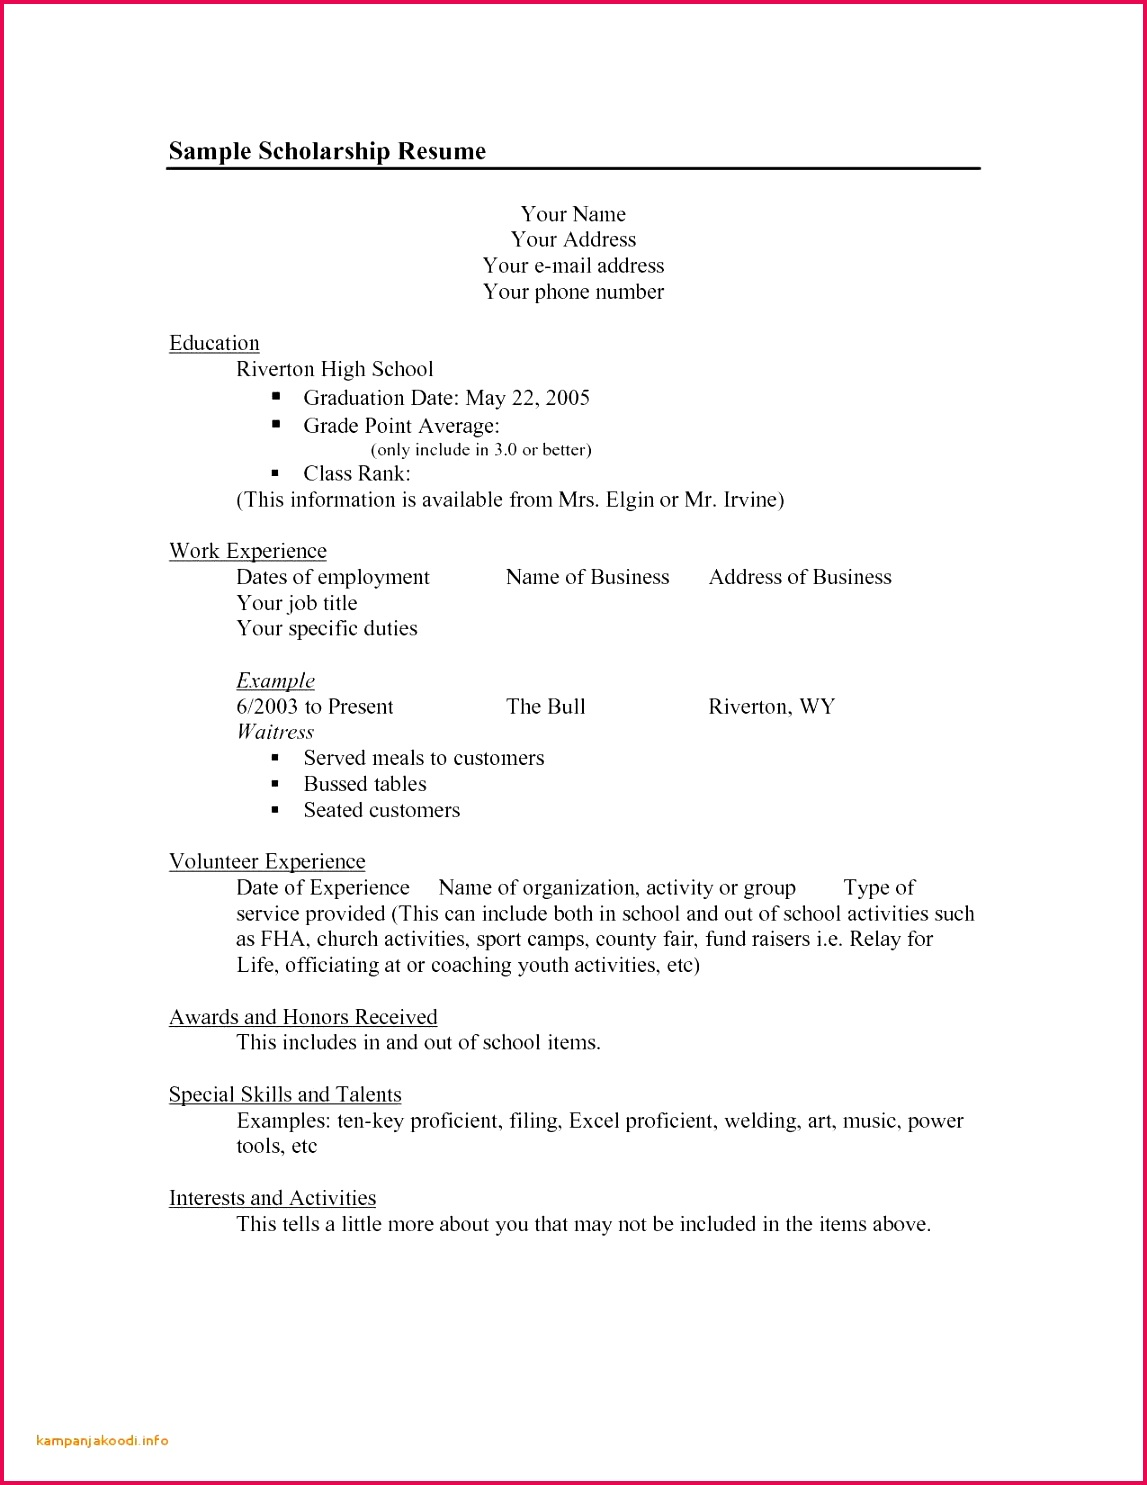 Letter Writing format Date Making A Cover Letter Unique Lovely Make Me A Resume New Resume